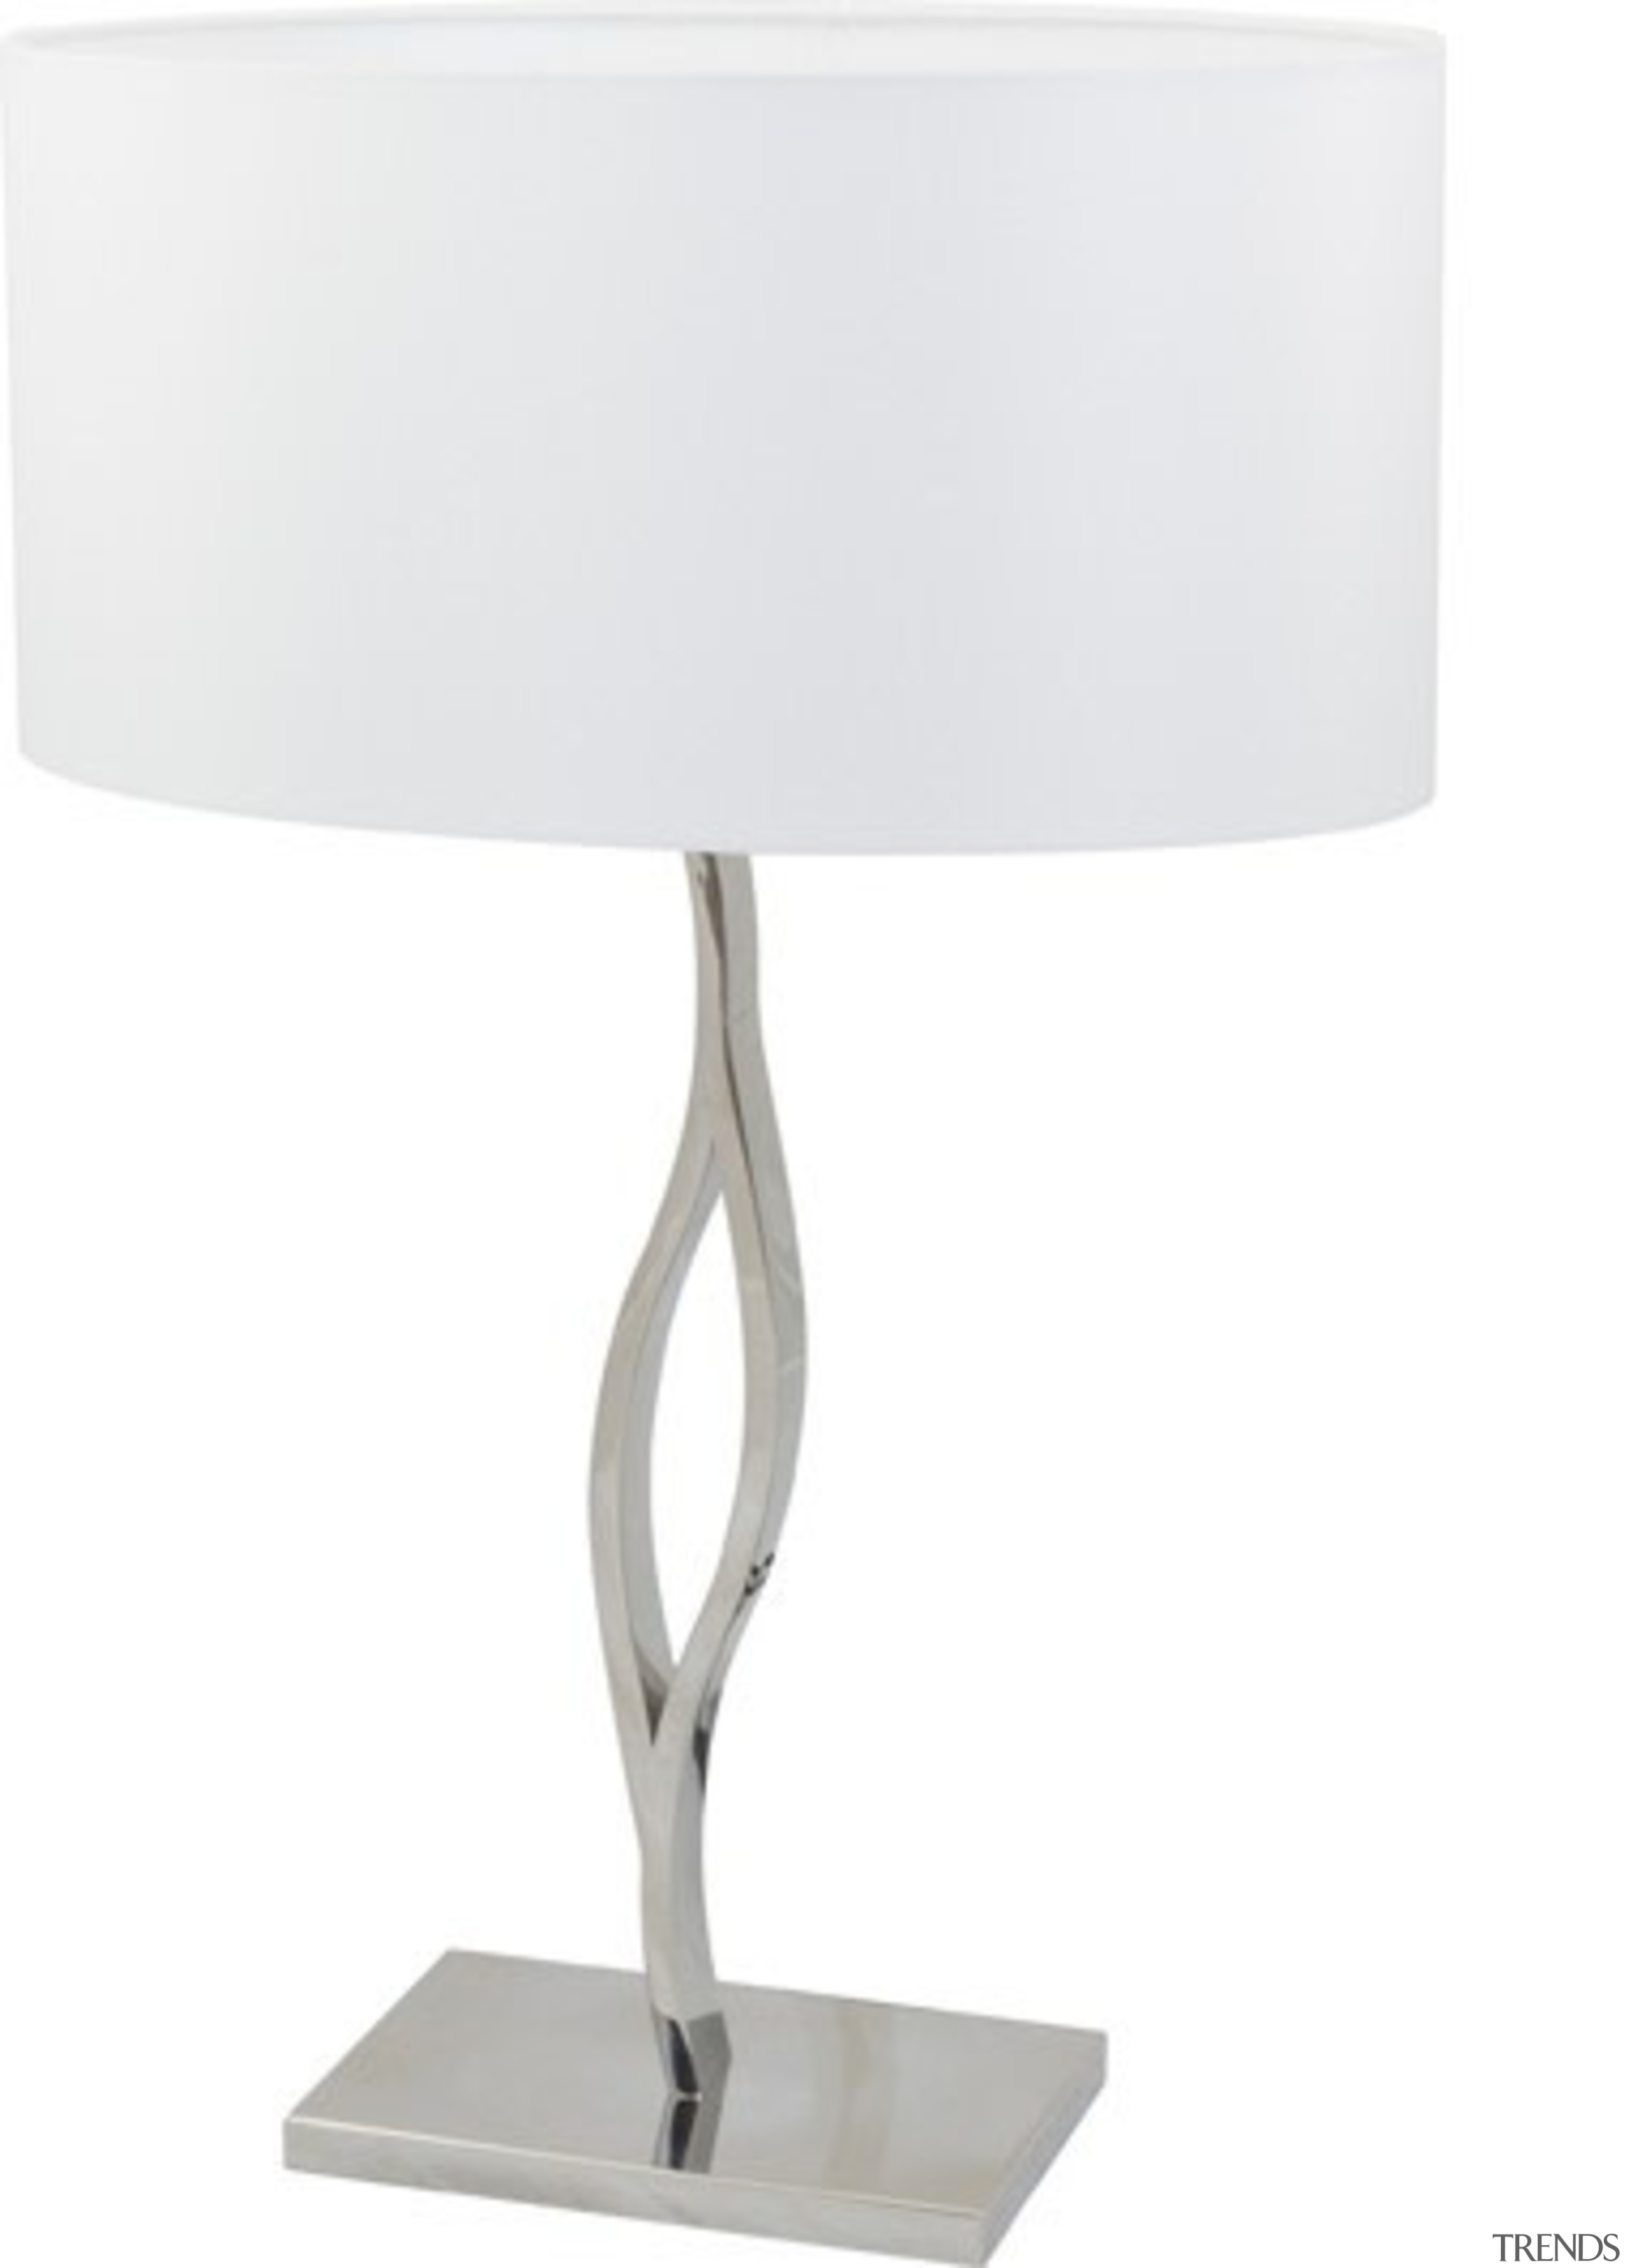 FeaturesCombining a crisp white oval fabric shade with light fixture, lighting, product design, table, white